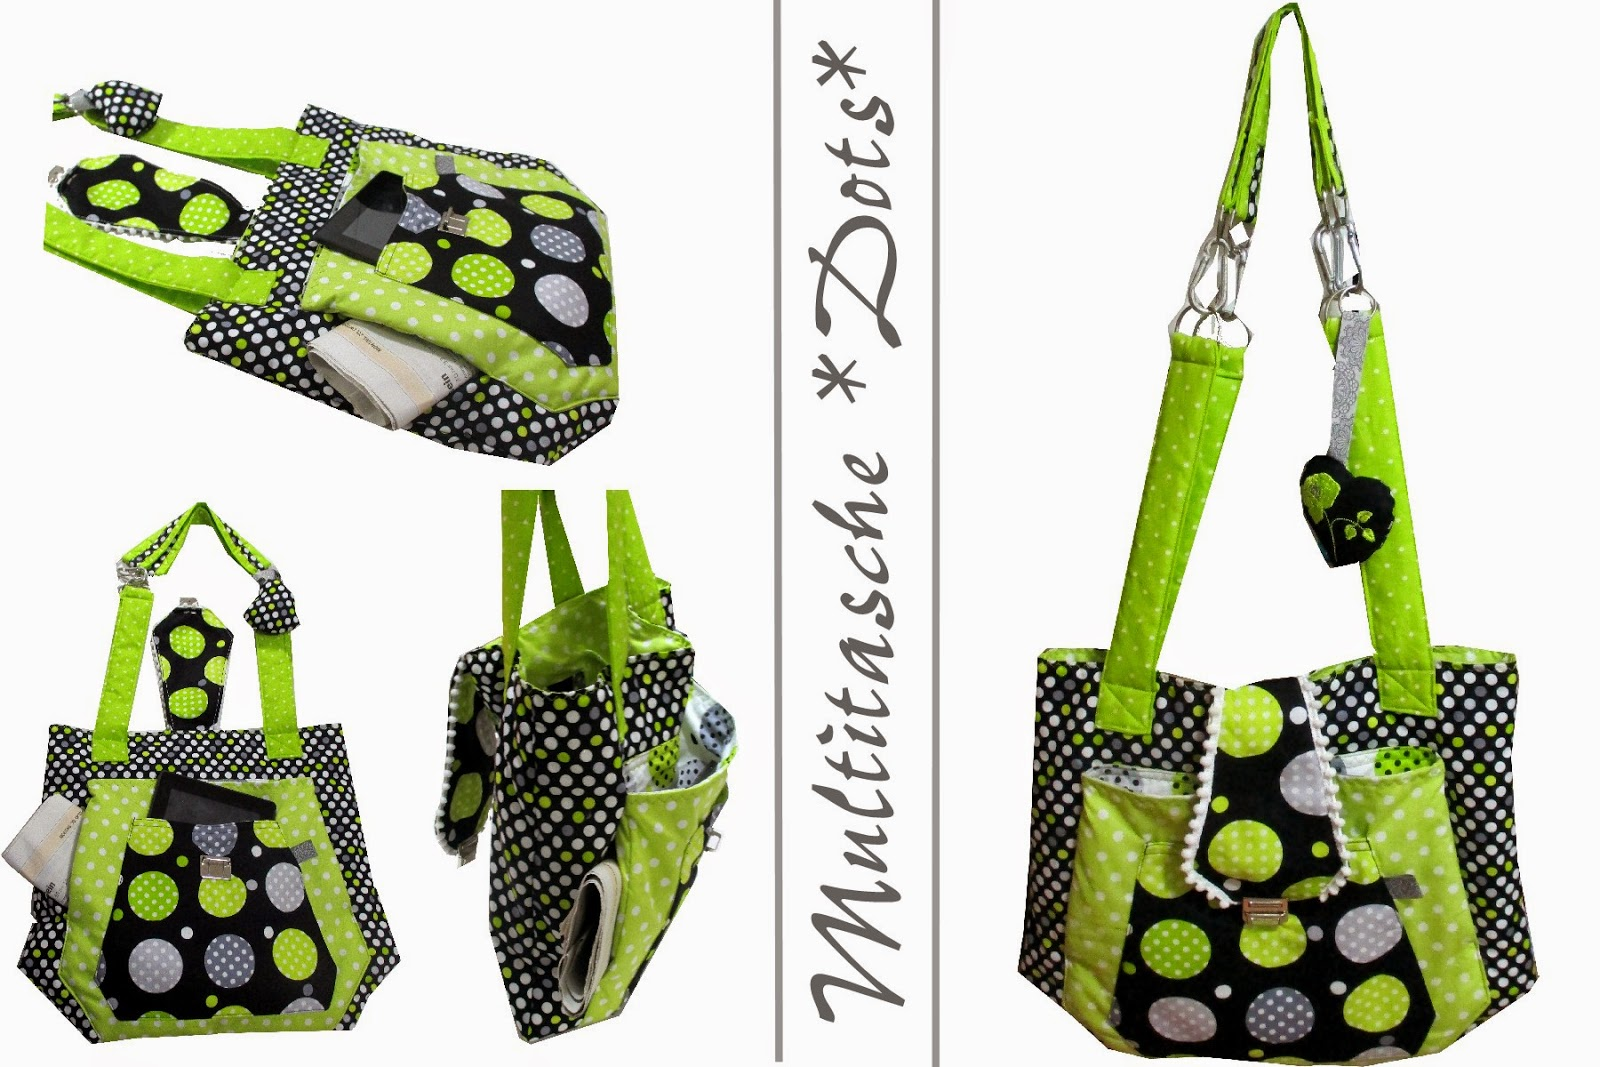 Multitasche *Dots*  79,90 €